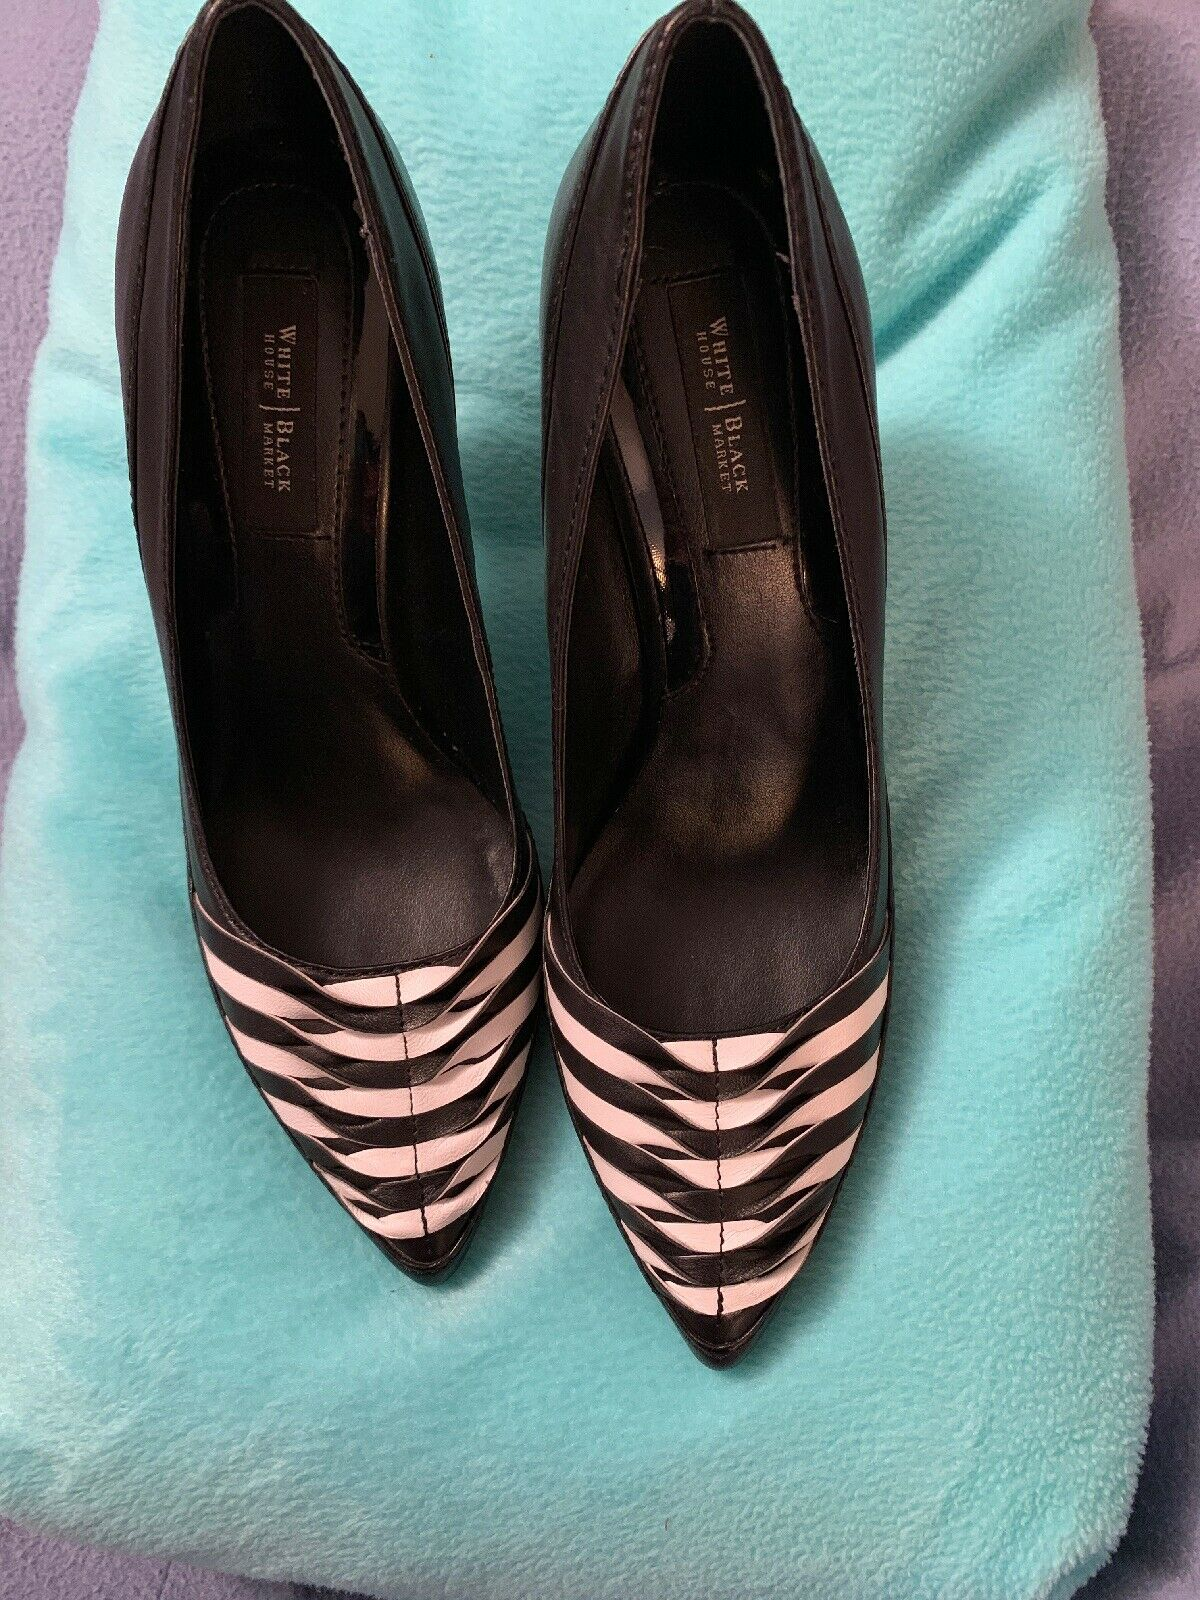 White House Black Market Scarlett Black White Leather Pumps Heels Size 6 M EUC